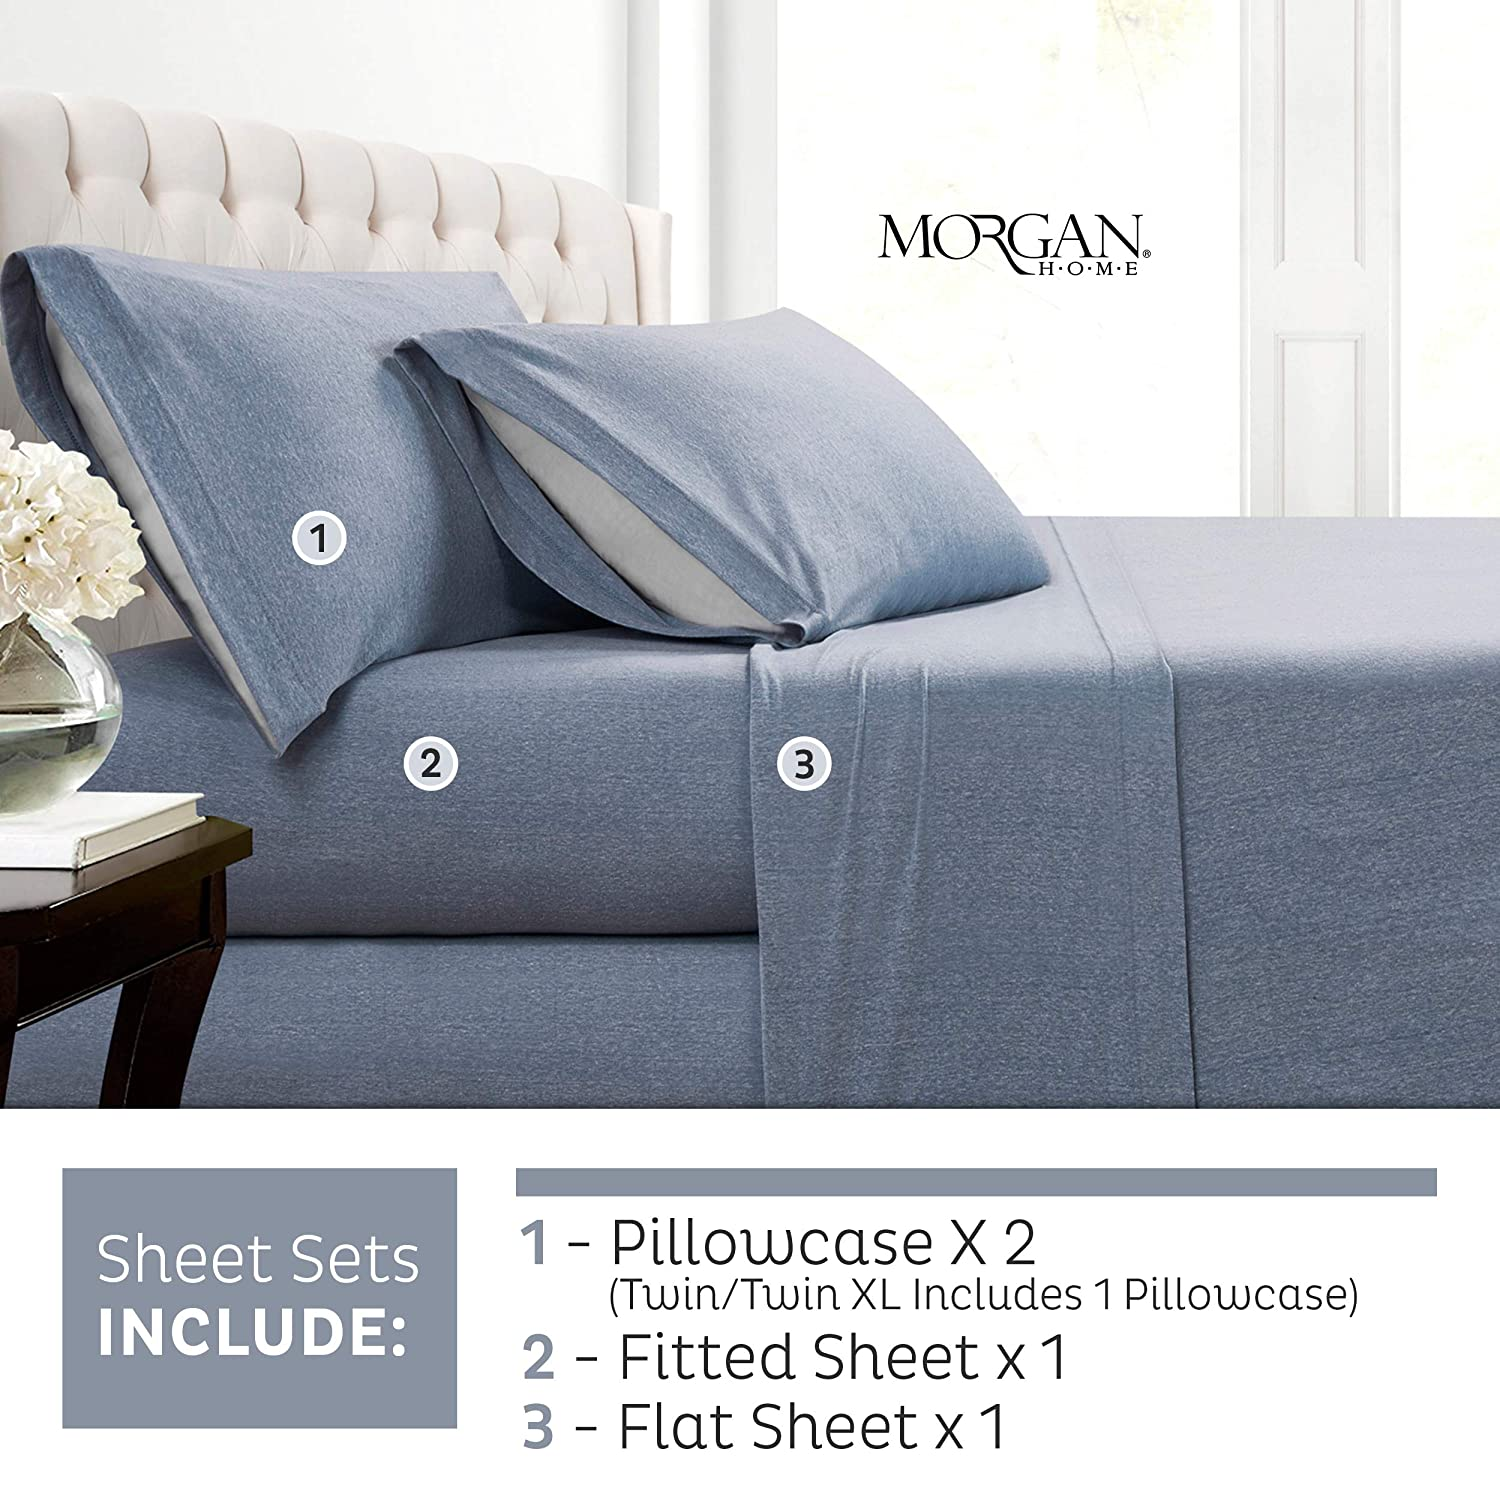 c490e18a Morgan Home Cotton Rich T-Shirt Soft Heather Jersey Knit Sheet Set - All  Season Bed Sheets, Warm and Cozy (Queen, Heather Blue)